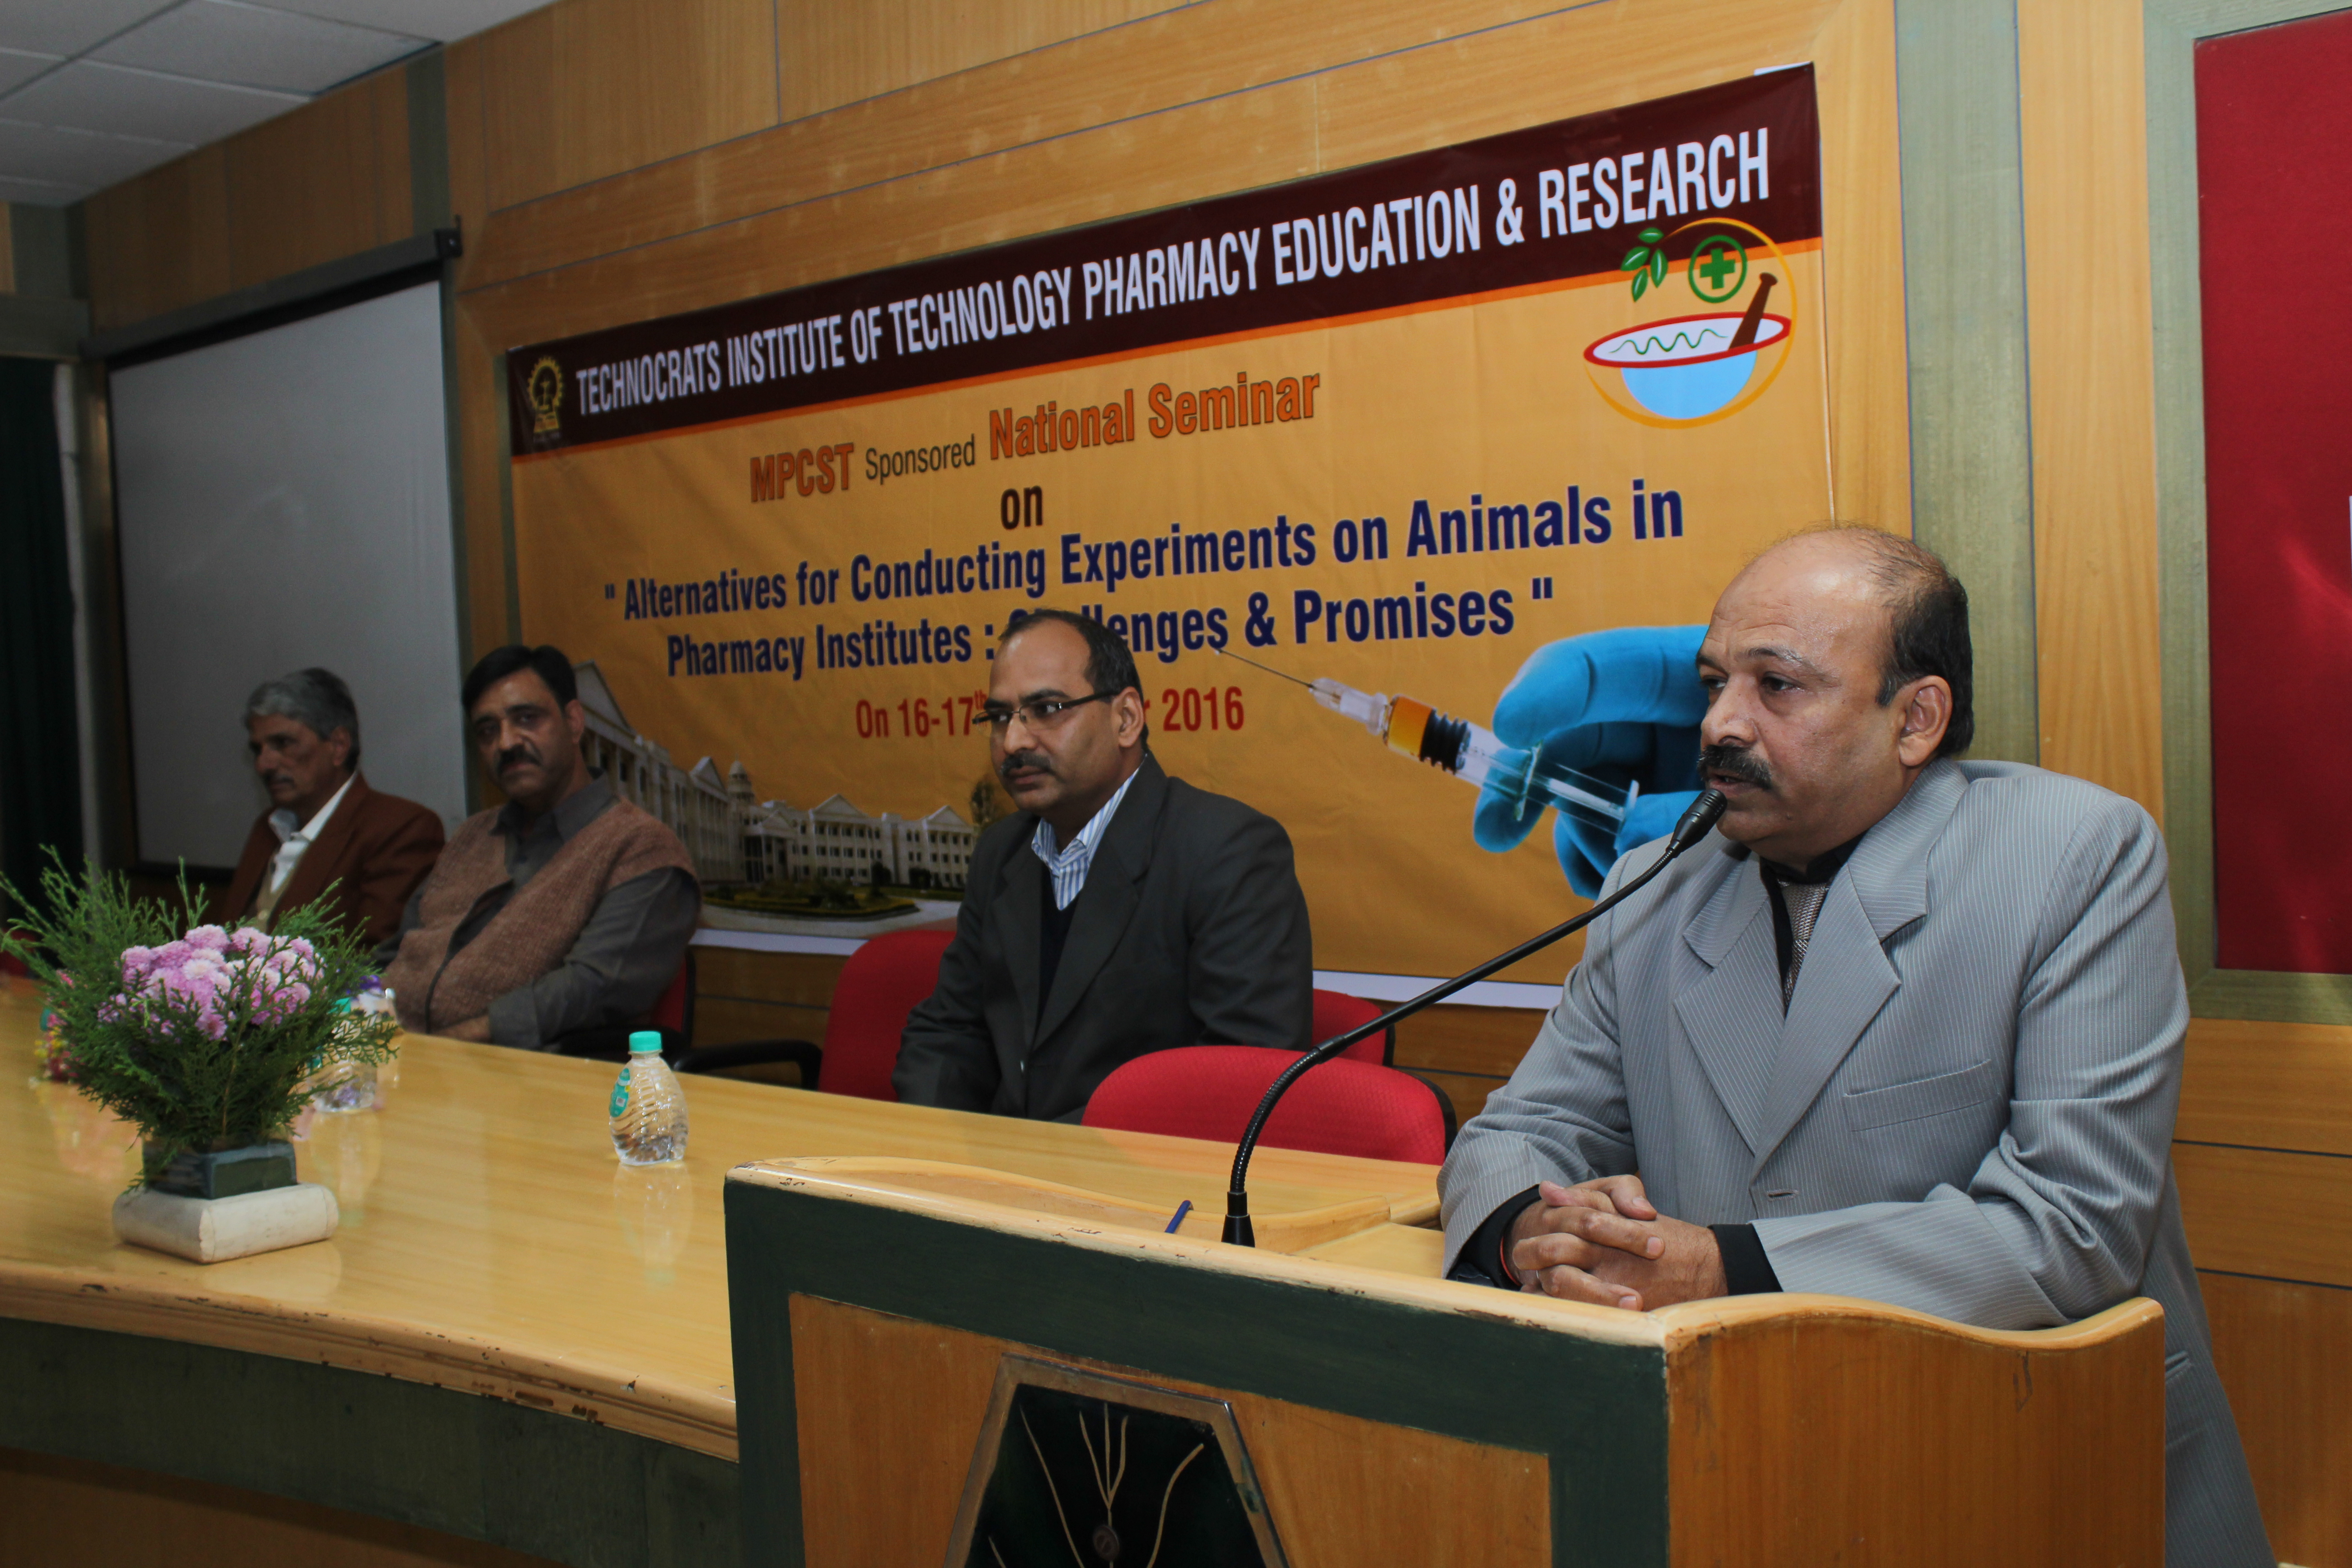 "TECHNOCRATS INSTITUTE OF TECHNOLOGY PHARMACY EDUCATION & RESEARCH Organised Two Day National Seminar on ""ALTERNATIVES FOR CONDUCTING EXPERIMENTS ON ANIMALS IN PHARMACY INSTITUTES:CHALLENGES & PROMISED"""